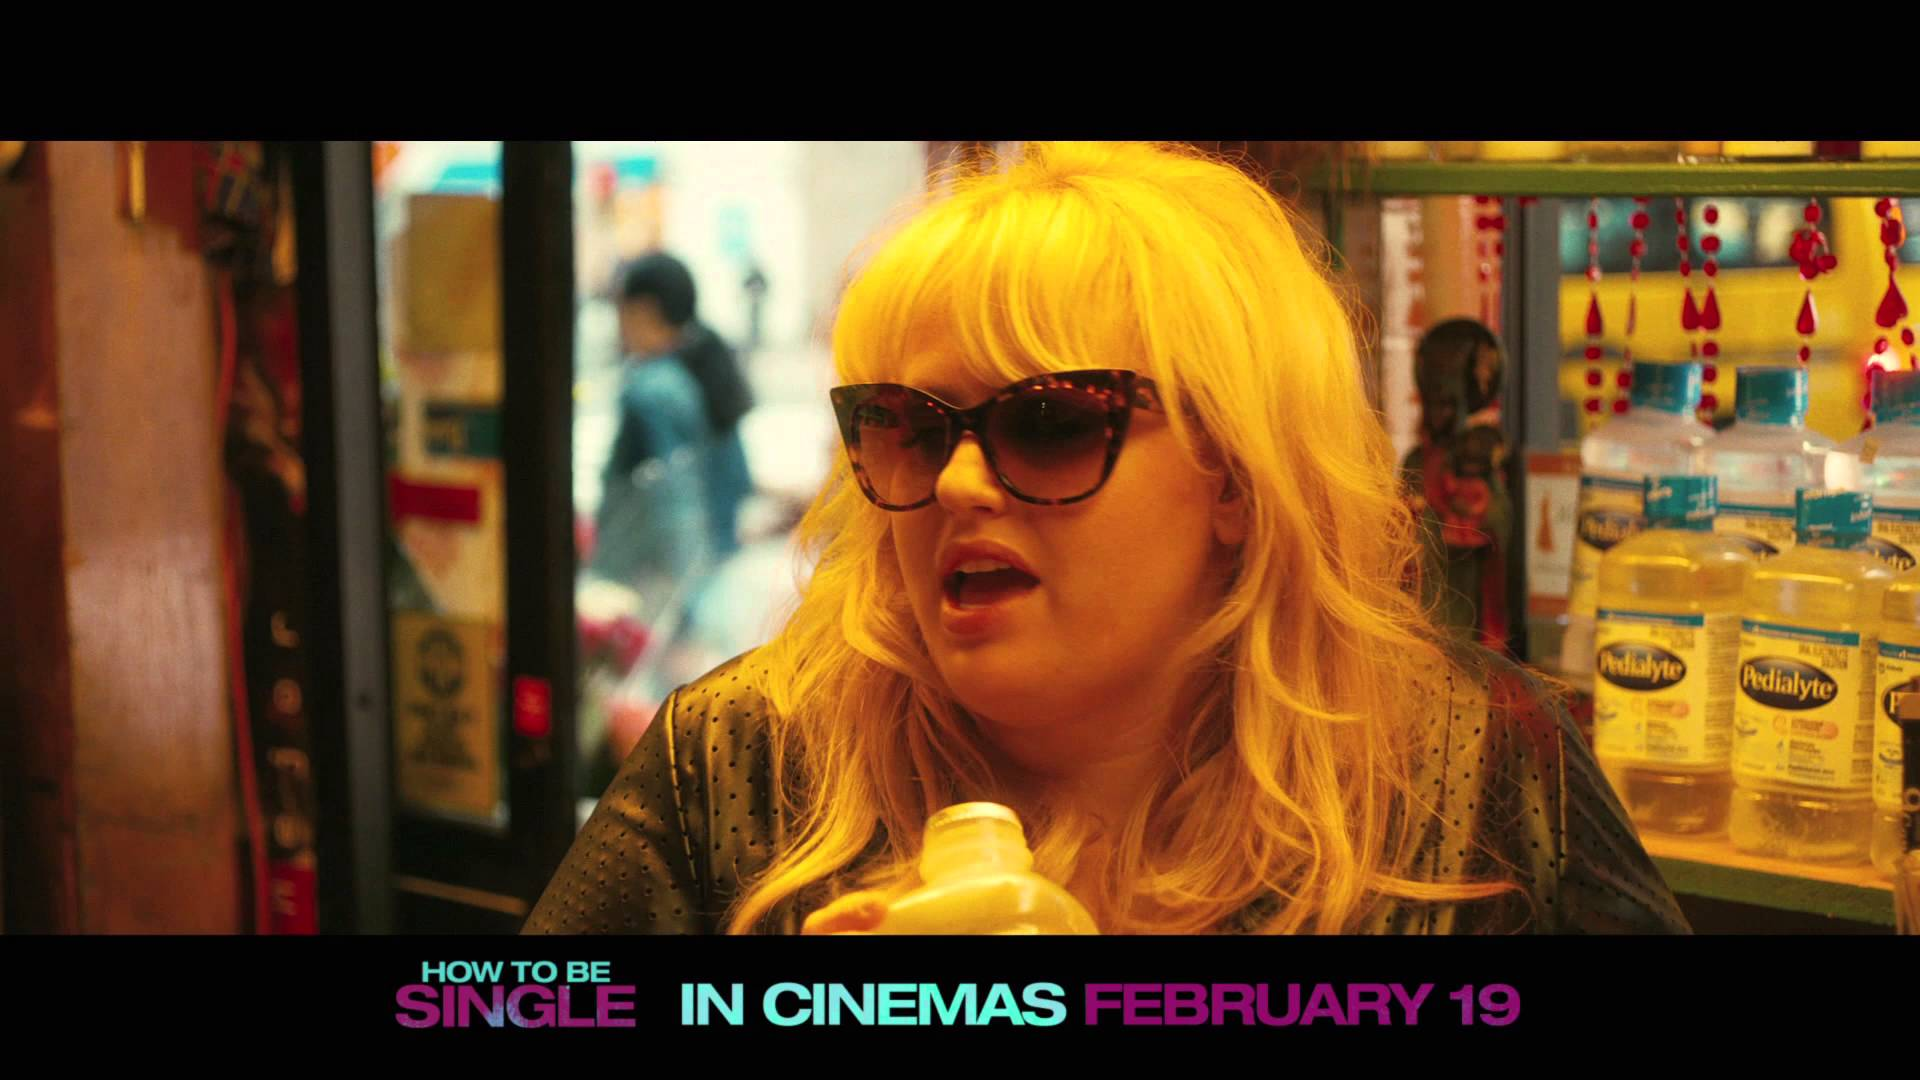 How To Be Single, Think TV Spot, Official Warner Bros. UK